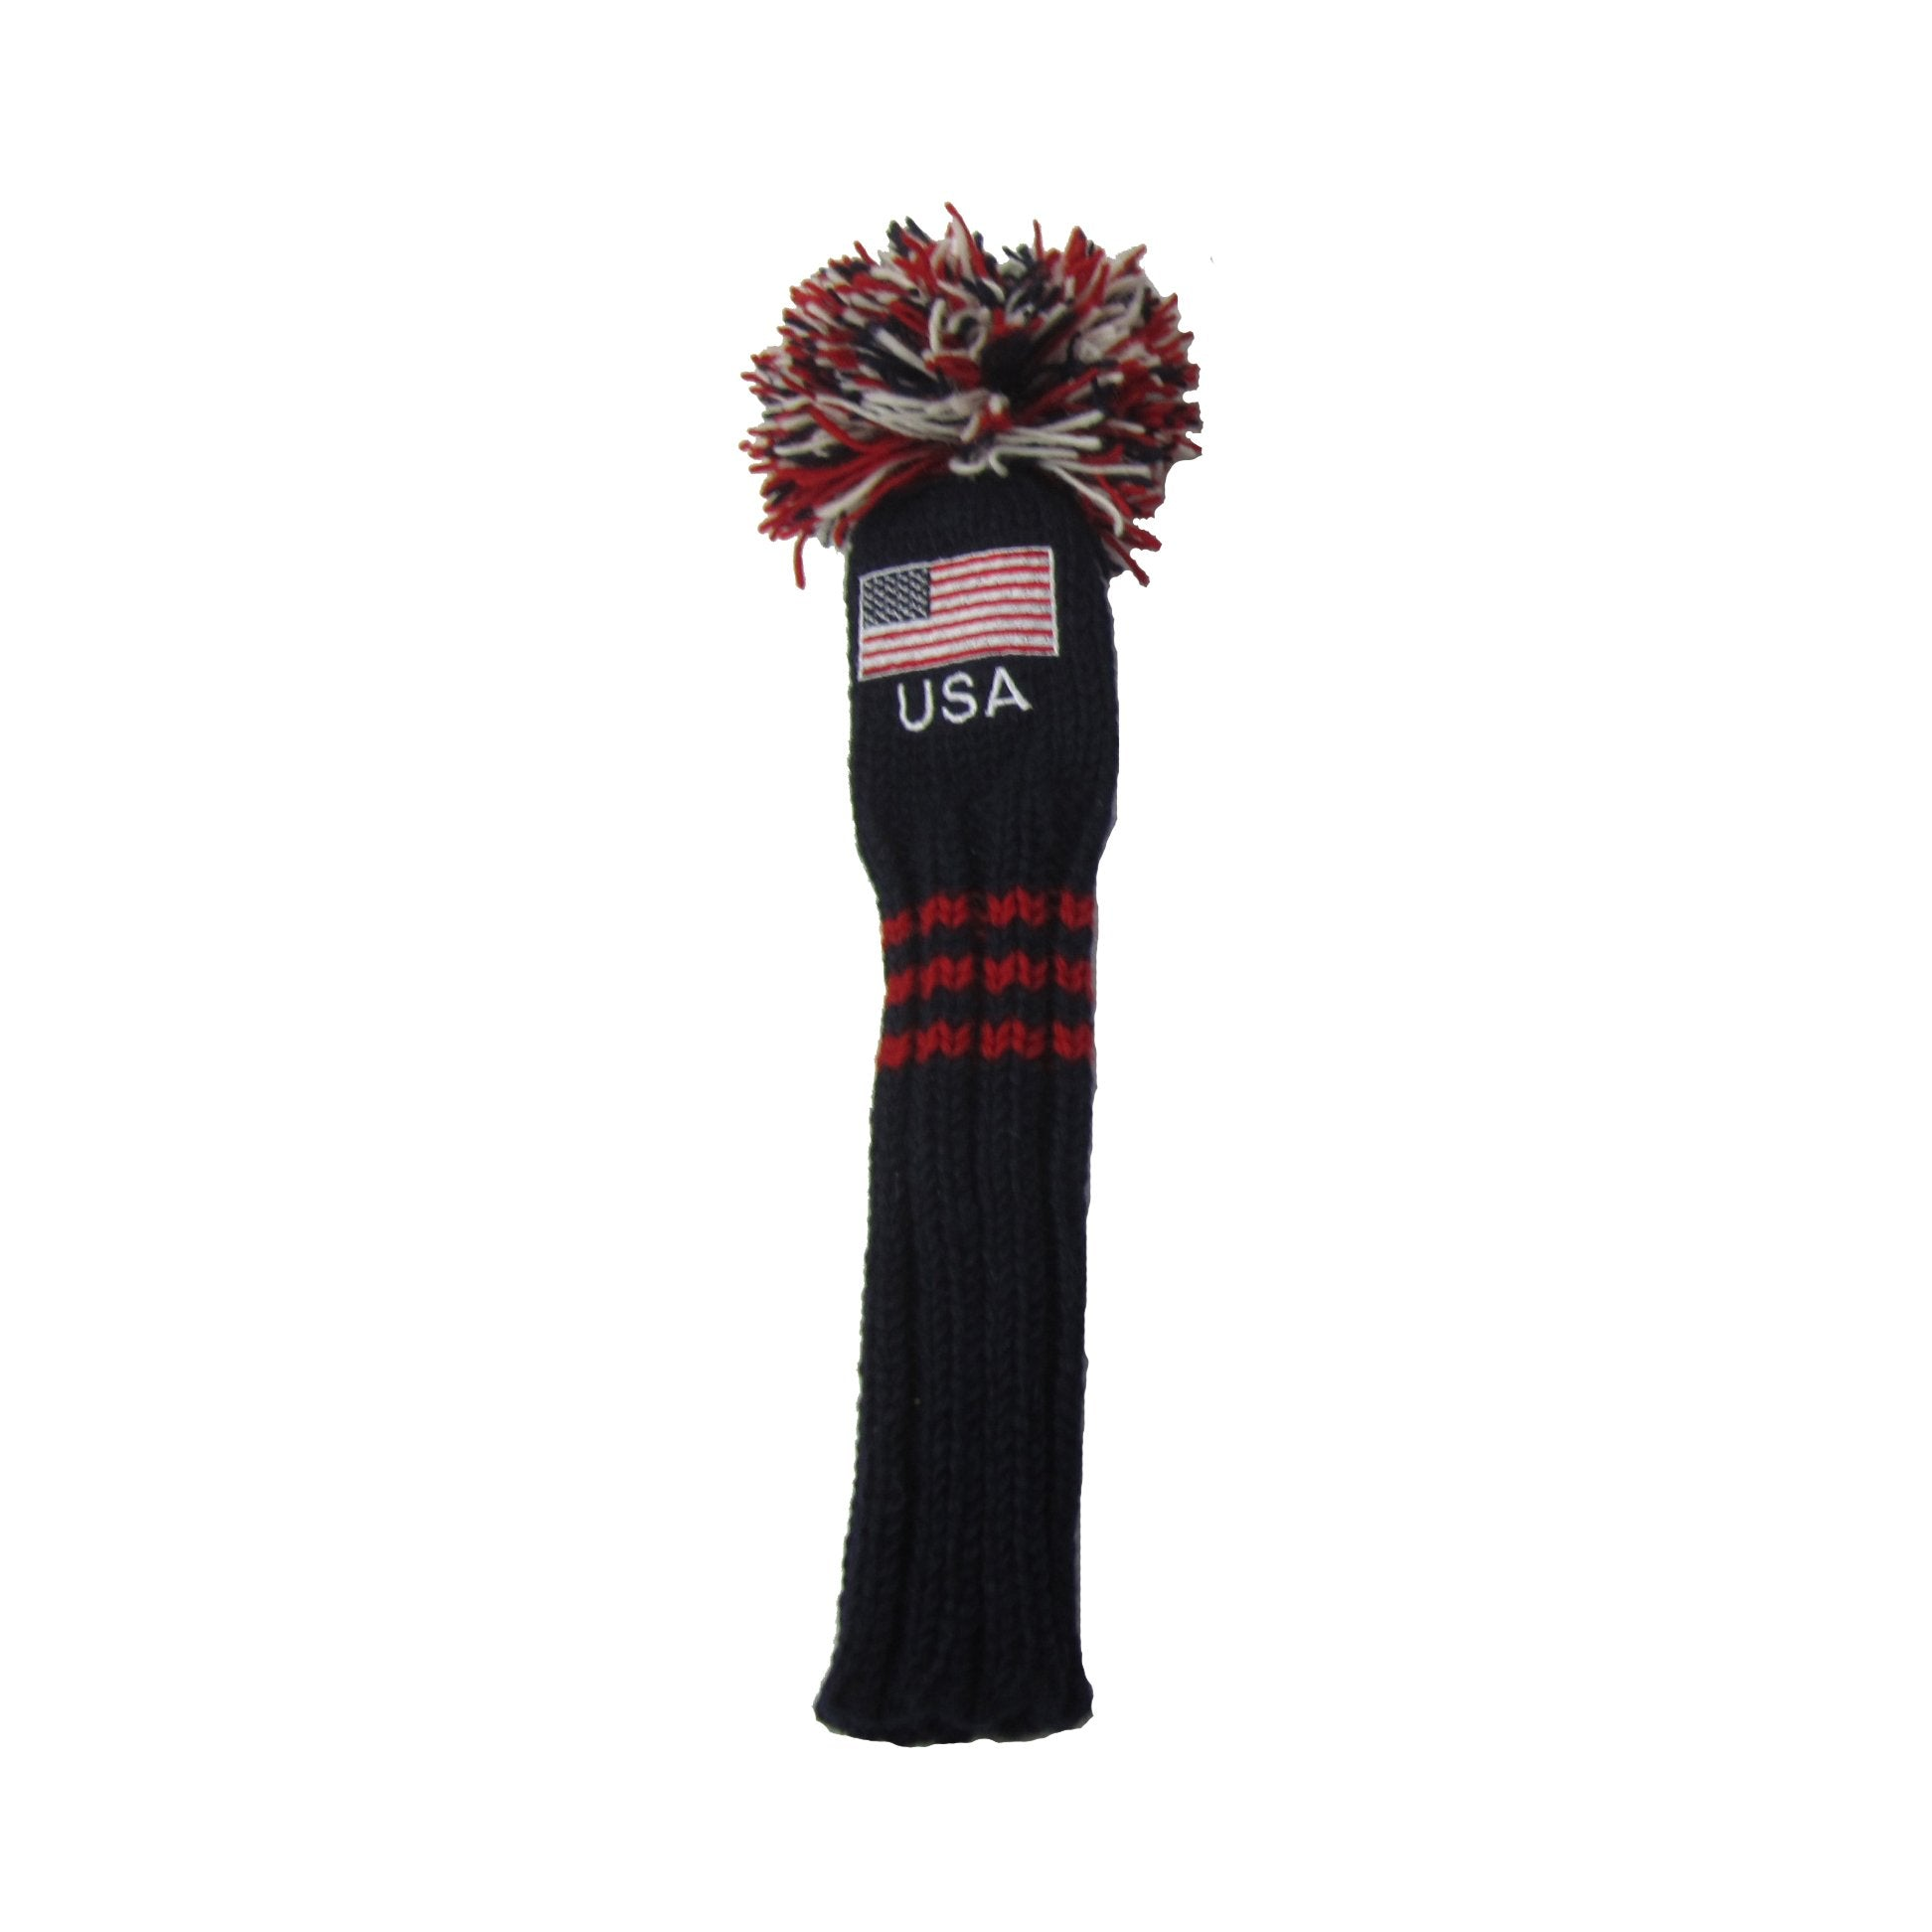 Old Glory – Knit Headcover